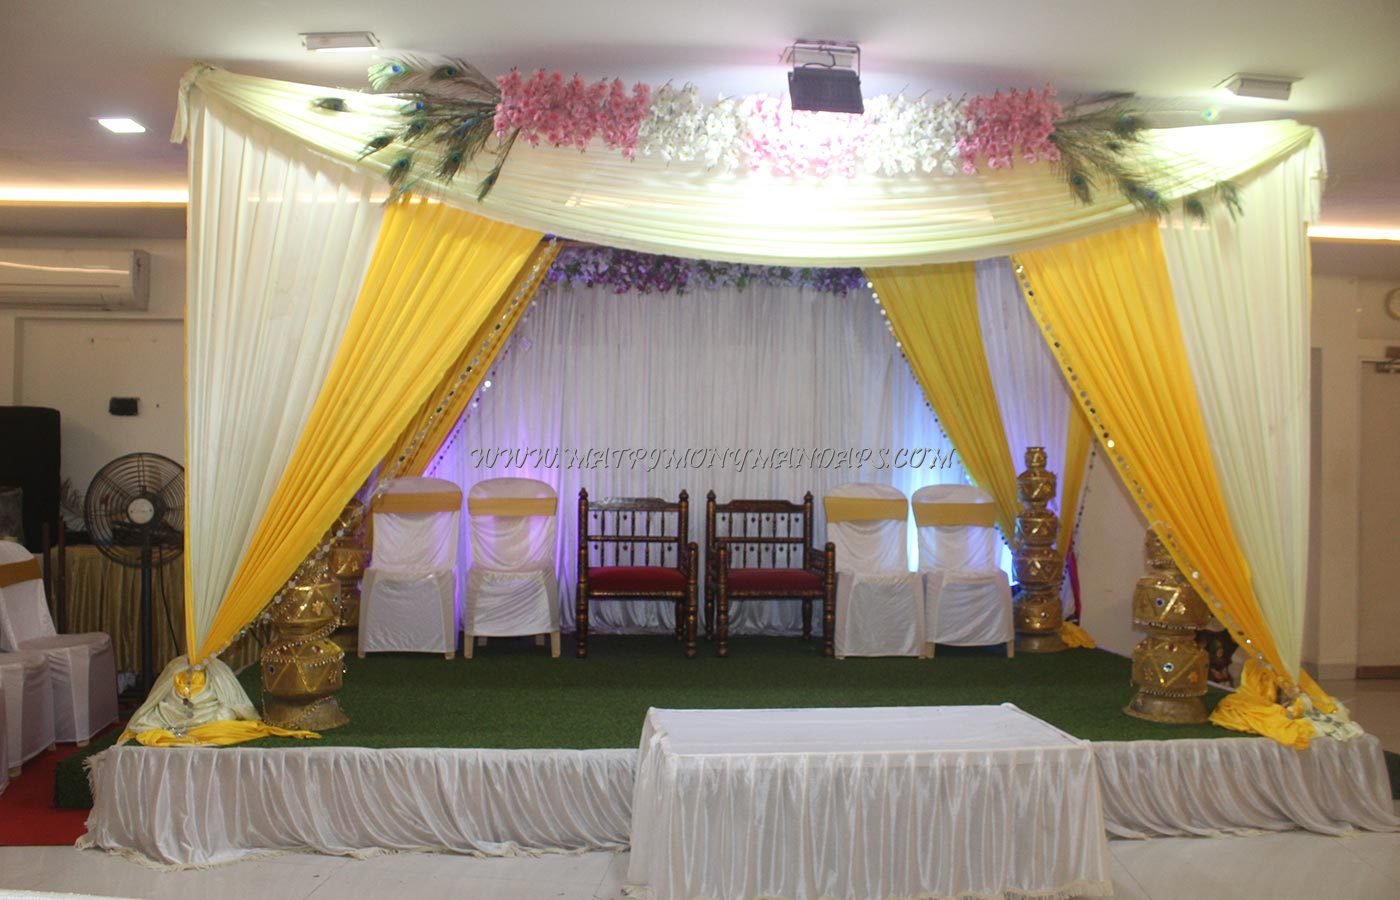 Find More Banquet Halls in Borivali West